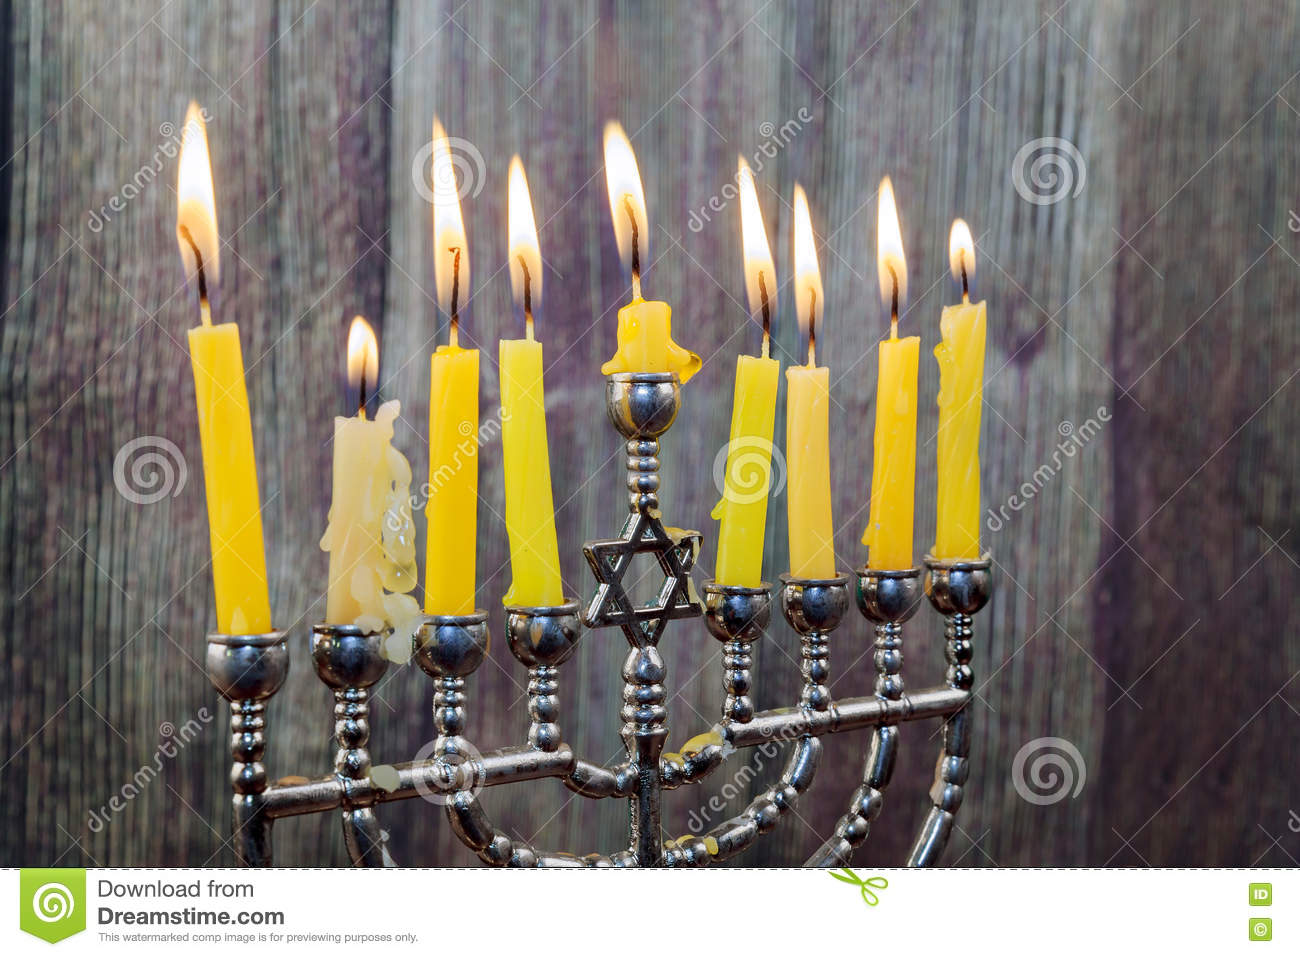 Download Chanukah Candles All In A Row. Bright, Shiny The Jewish Holiday. Stock Photo - Image of colors, festival: 76948342